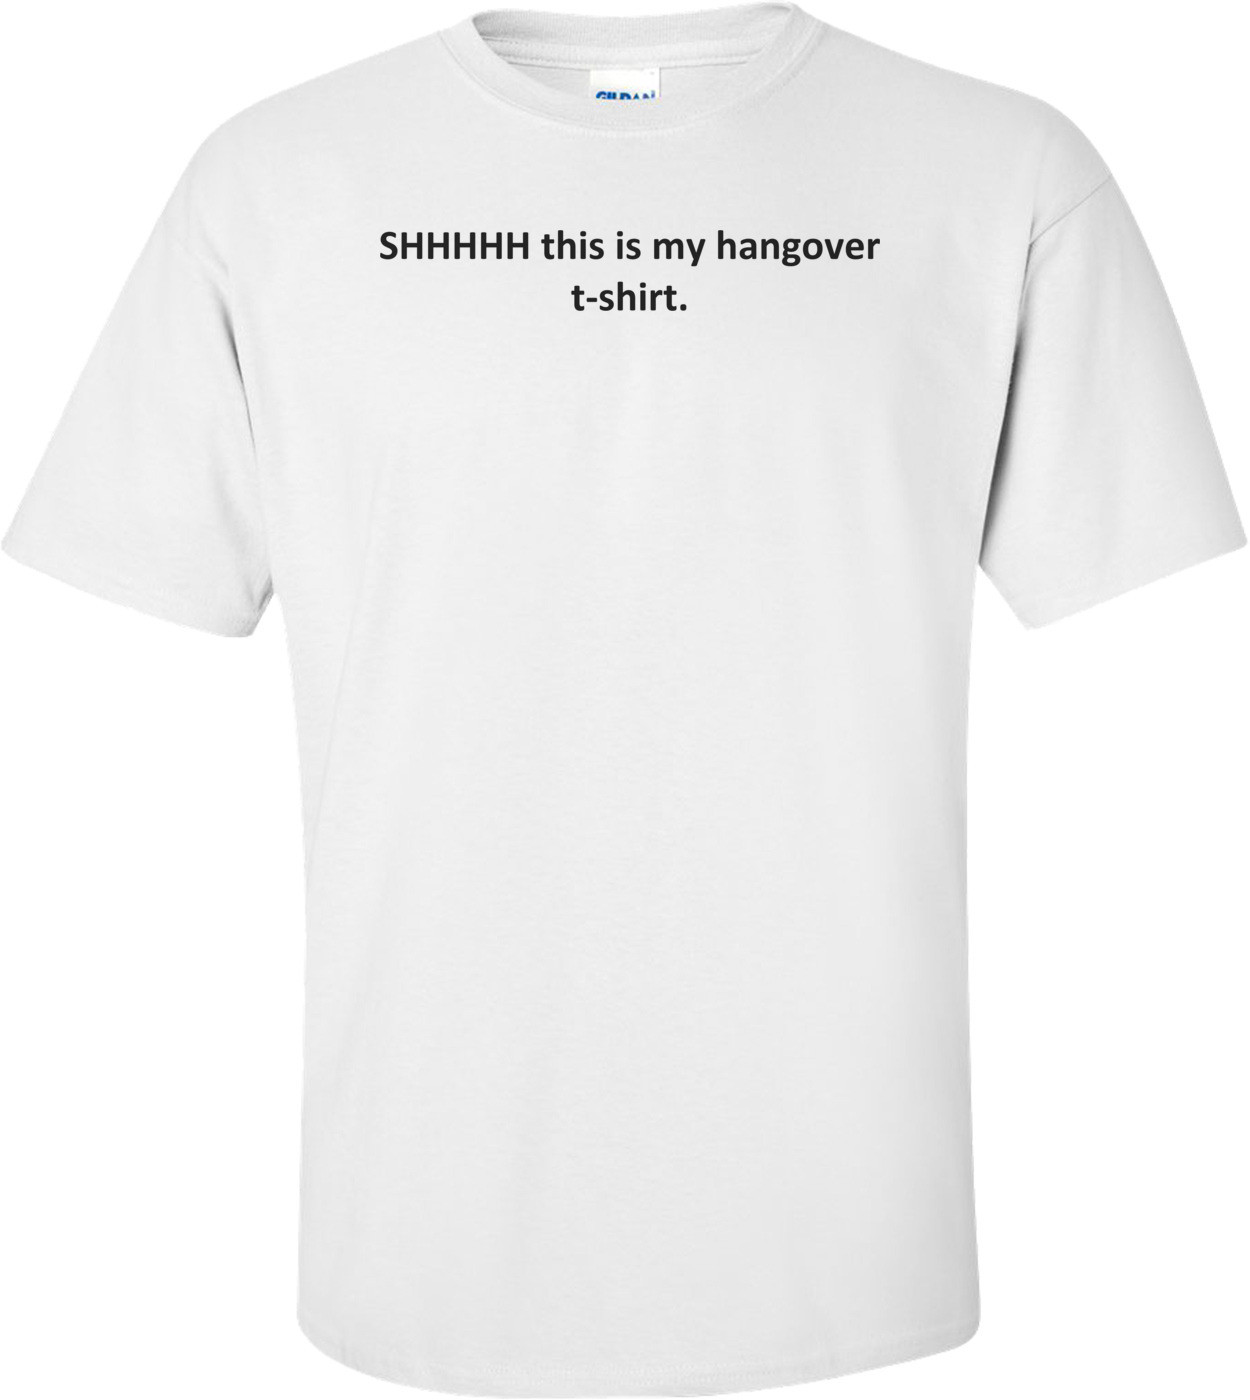 SHHHHH this is my hangover t-shirt. Shirt